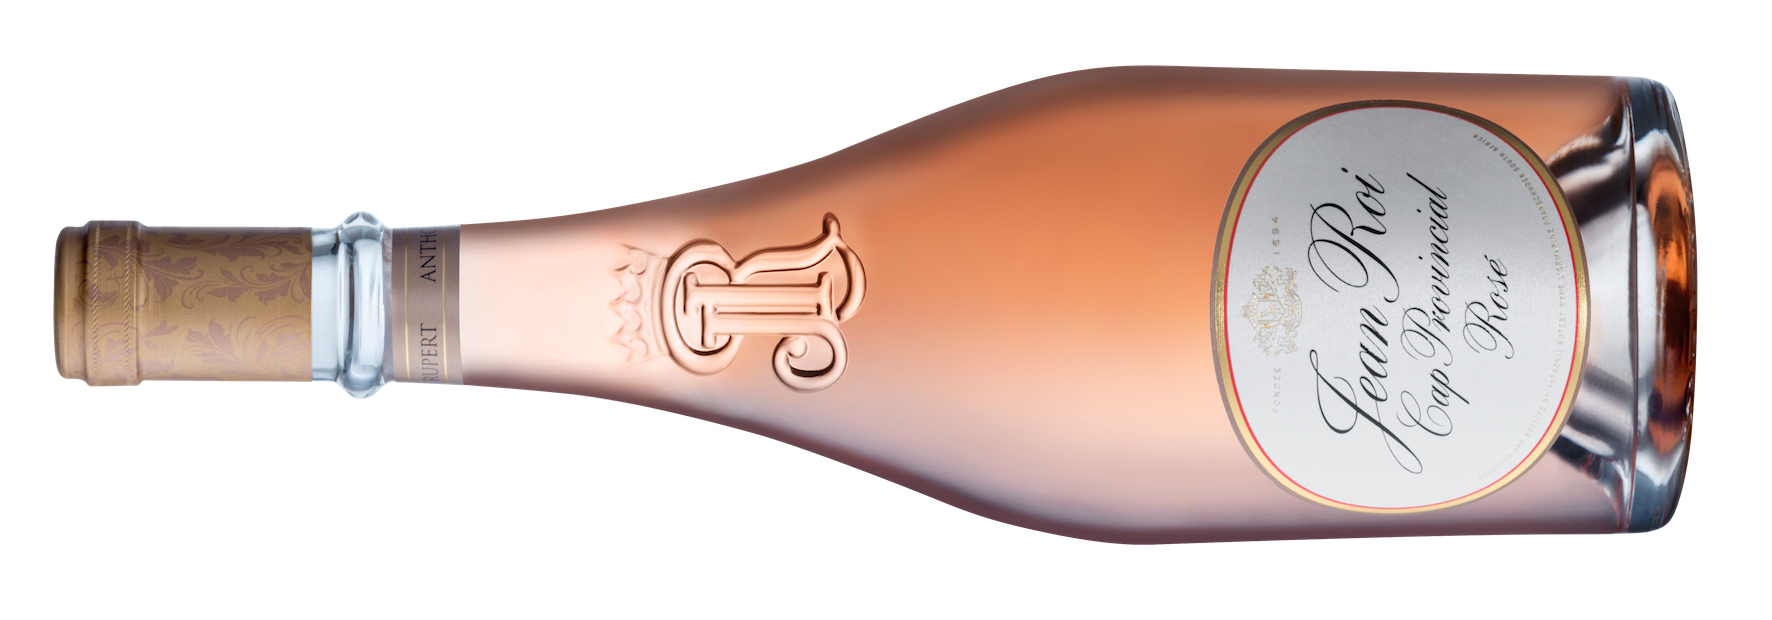 A Premium Provençal Style Rosé – Perfect For Summer And Any Occasion photo